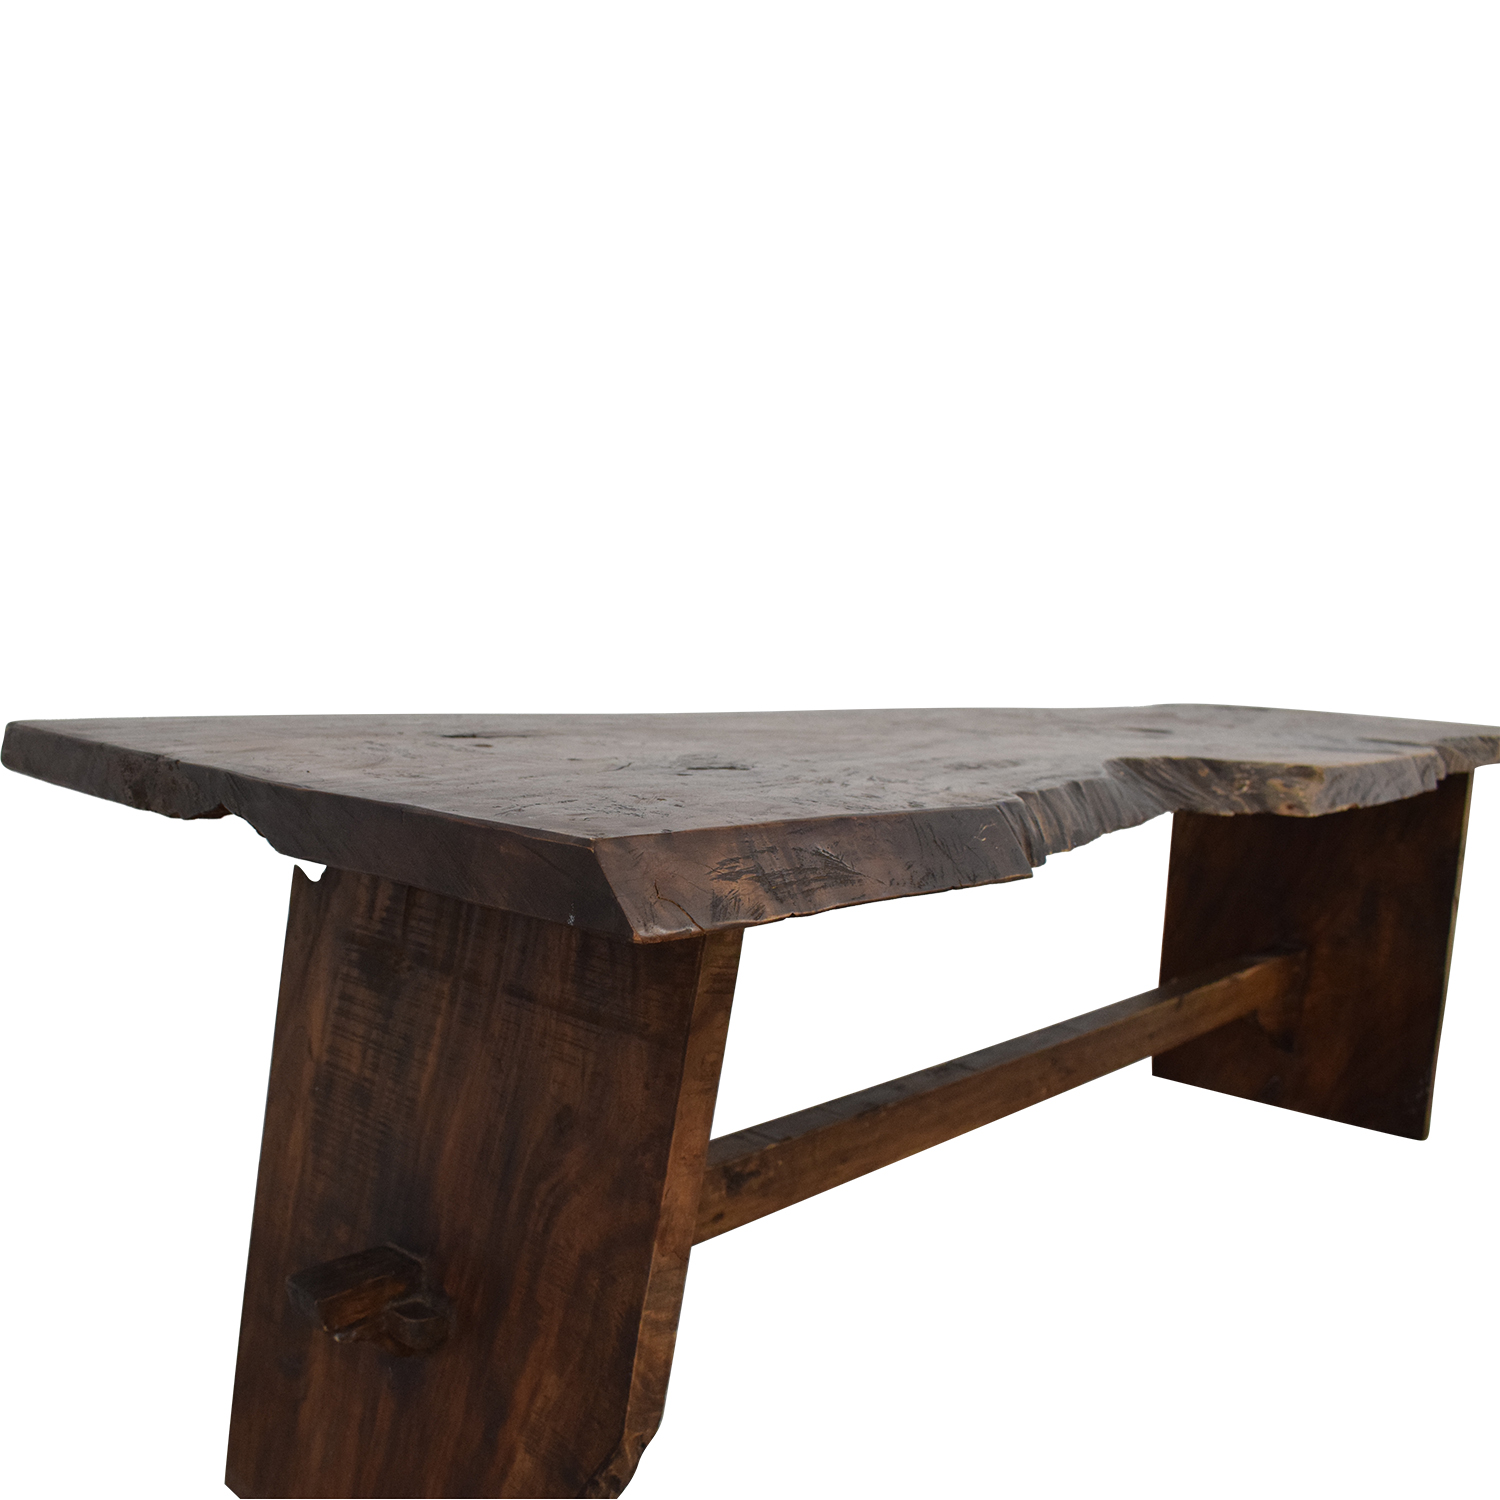 Fitch Slab Dining Table for sale